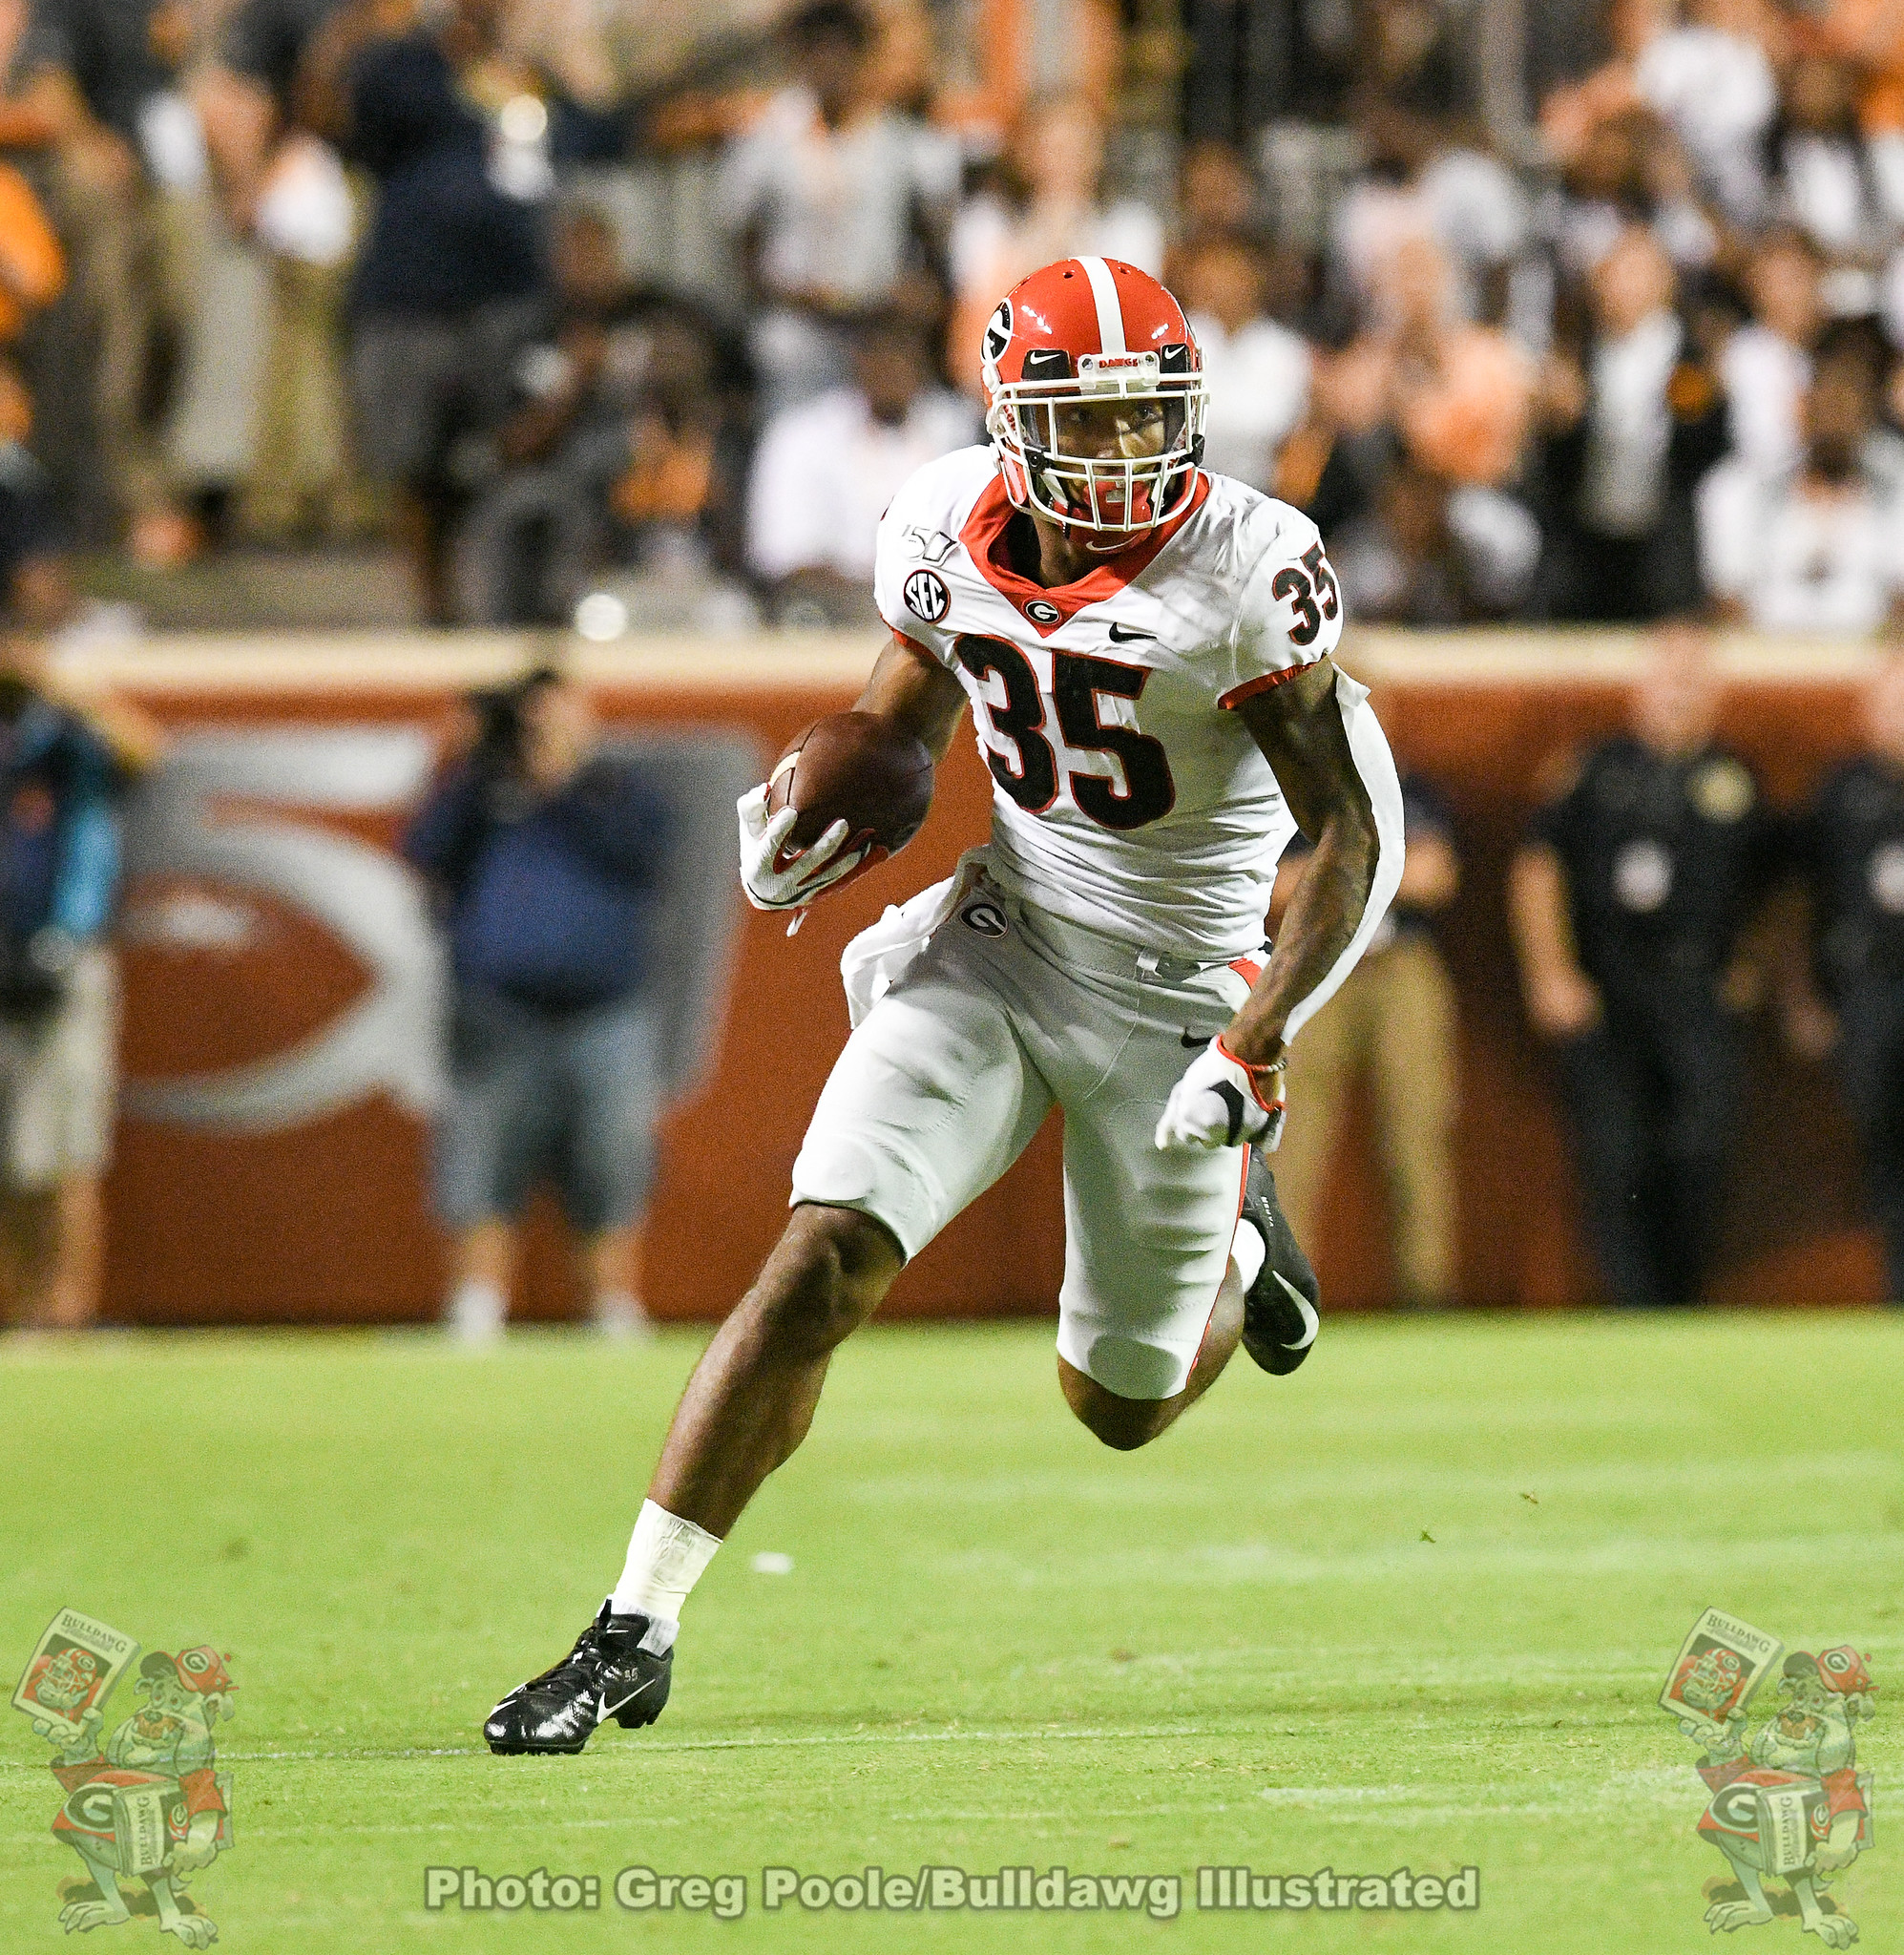 Brian Herrien (35) - Georgia vs. Tennessee 2019 - October 05, 2019 - Second Quarter